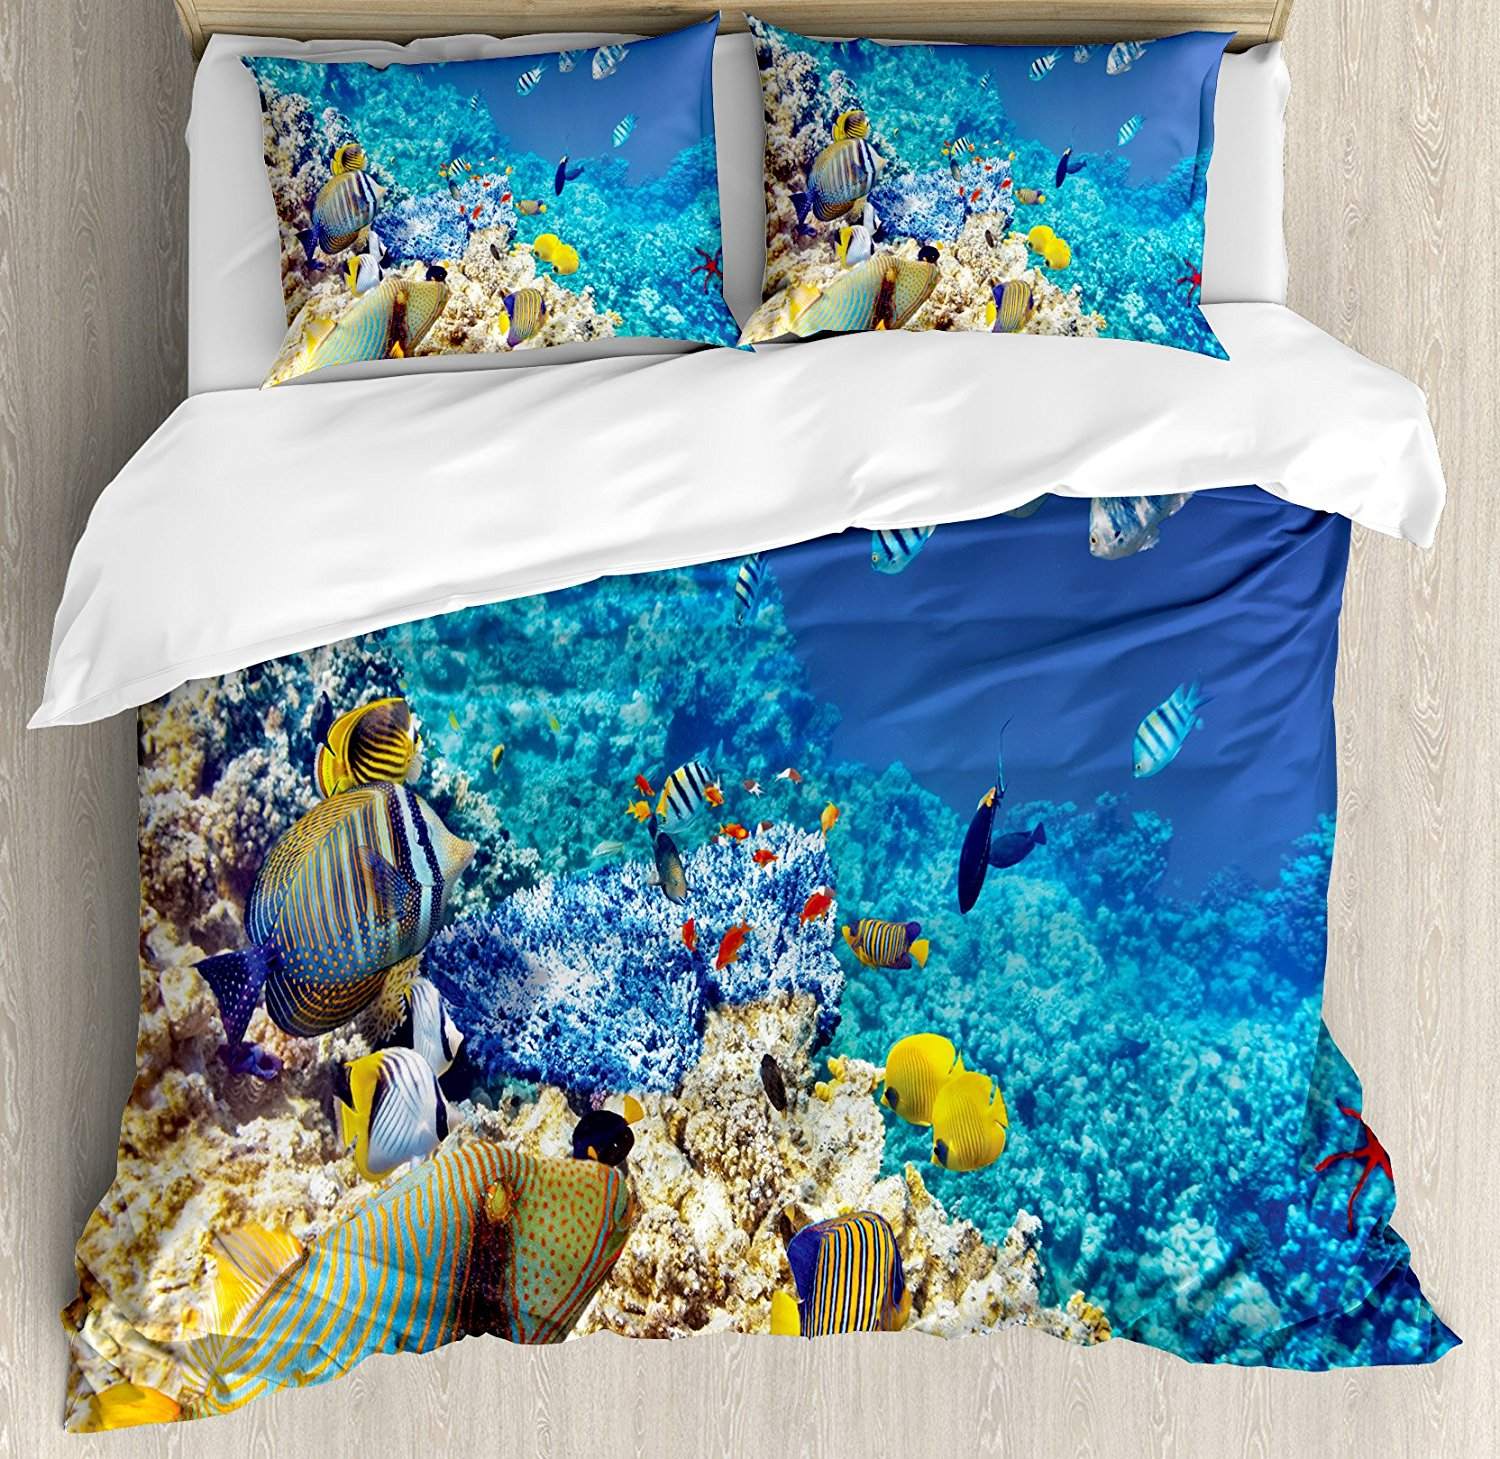 Ocean Duvet Cover Set King Size by Ambesonne, Clear Sea Animal World Corals Tropical Fishes and Starfish Egyptian Sea Image, Decorative 3 Piece Bedding Set with 2 Pillow Shams, Aqua Blue and Tan